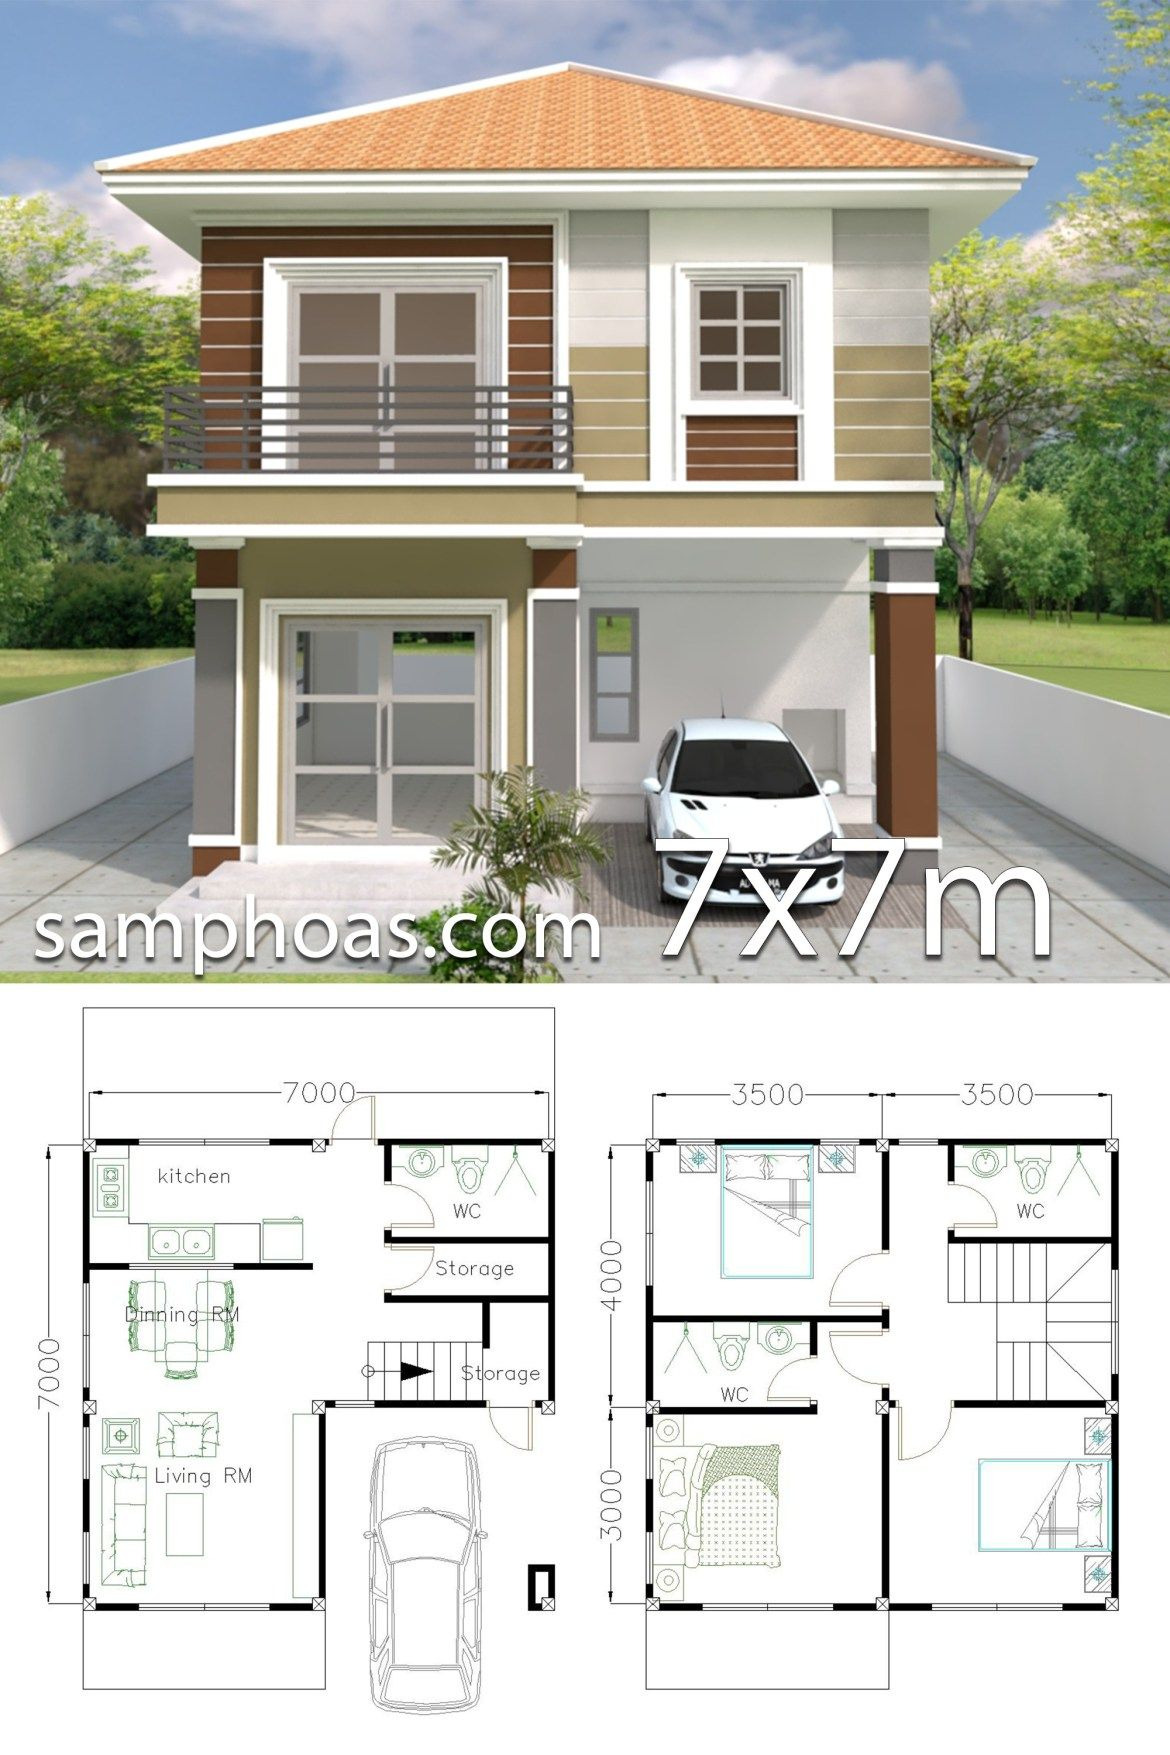 Small House Designs and Floor Plans New Home Design Plan 7x7m with 3 Bedrooms